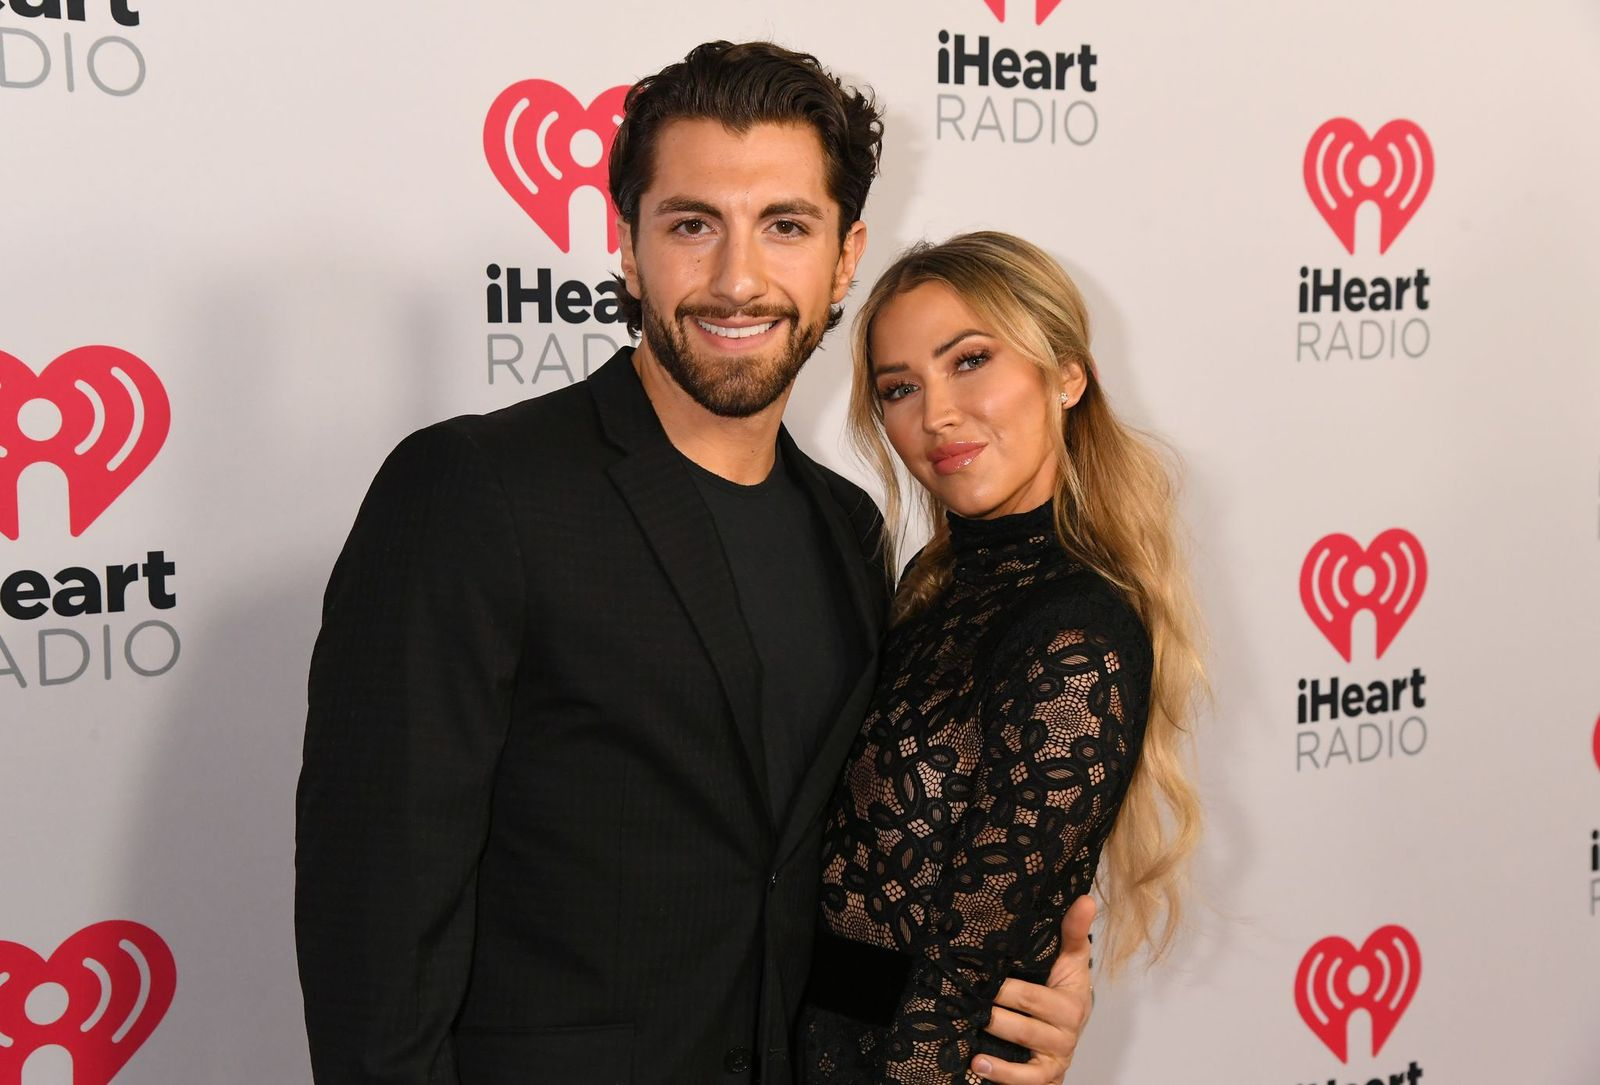 Jason Tartick and Kaitlyn Bristowe at the 2020 iHeartRadio Podcast Awards in January 2020 in Burbank, California | Source: Getty Images